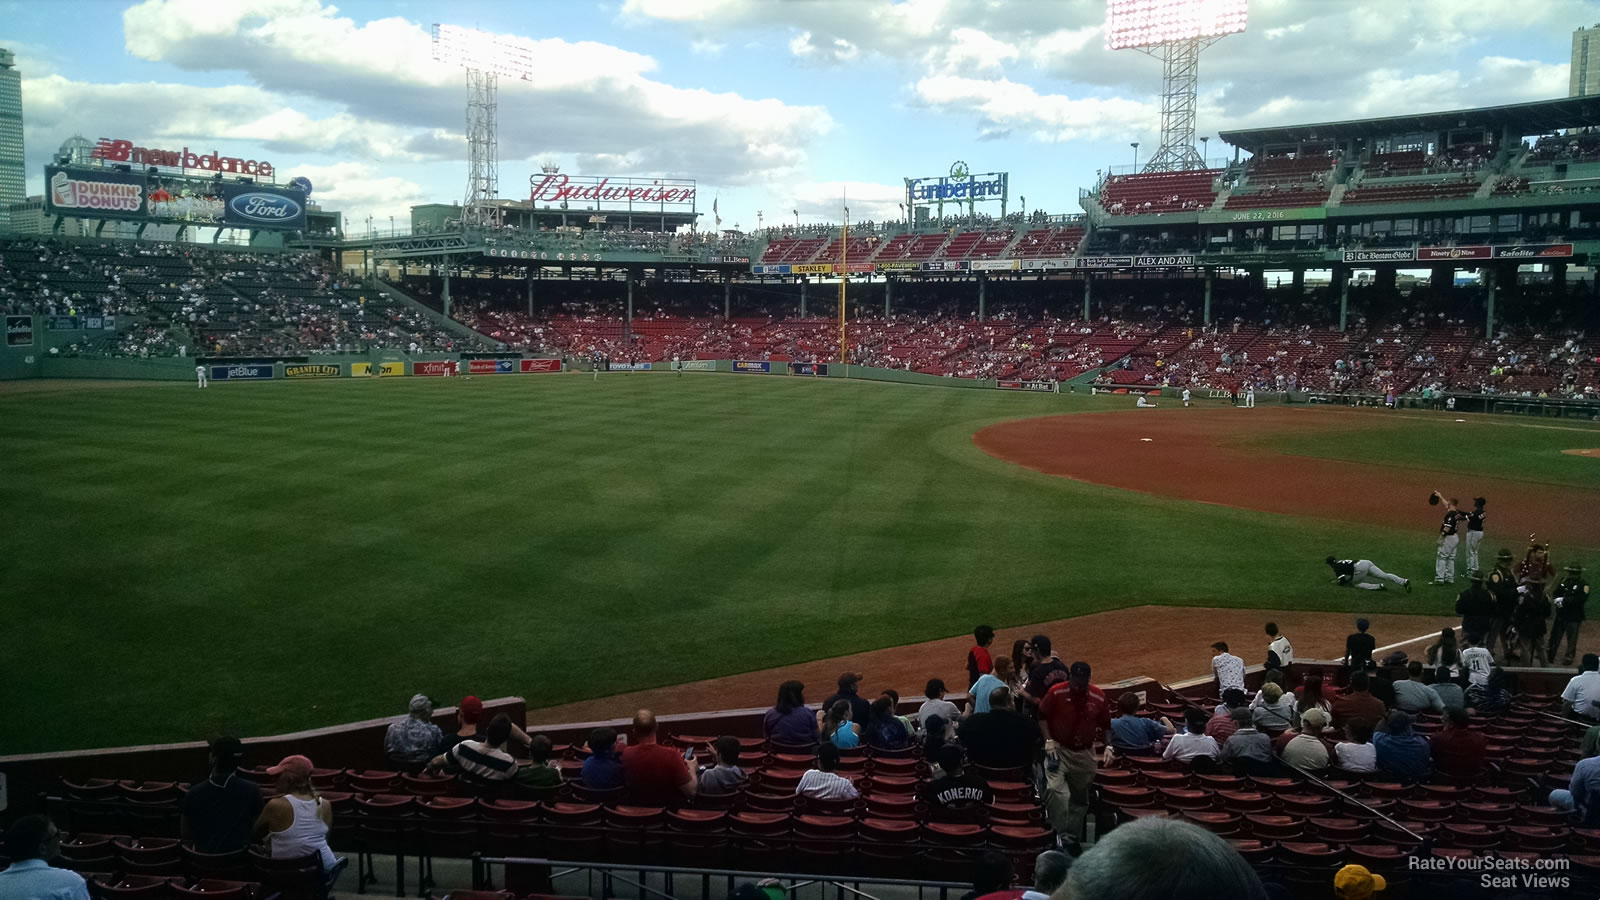 Third Row Seating >> Fenway Park Loge Box 163 - RateYourSeats.com